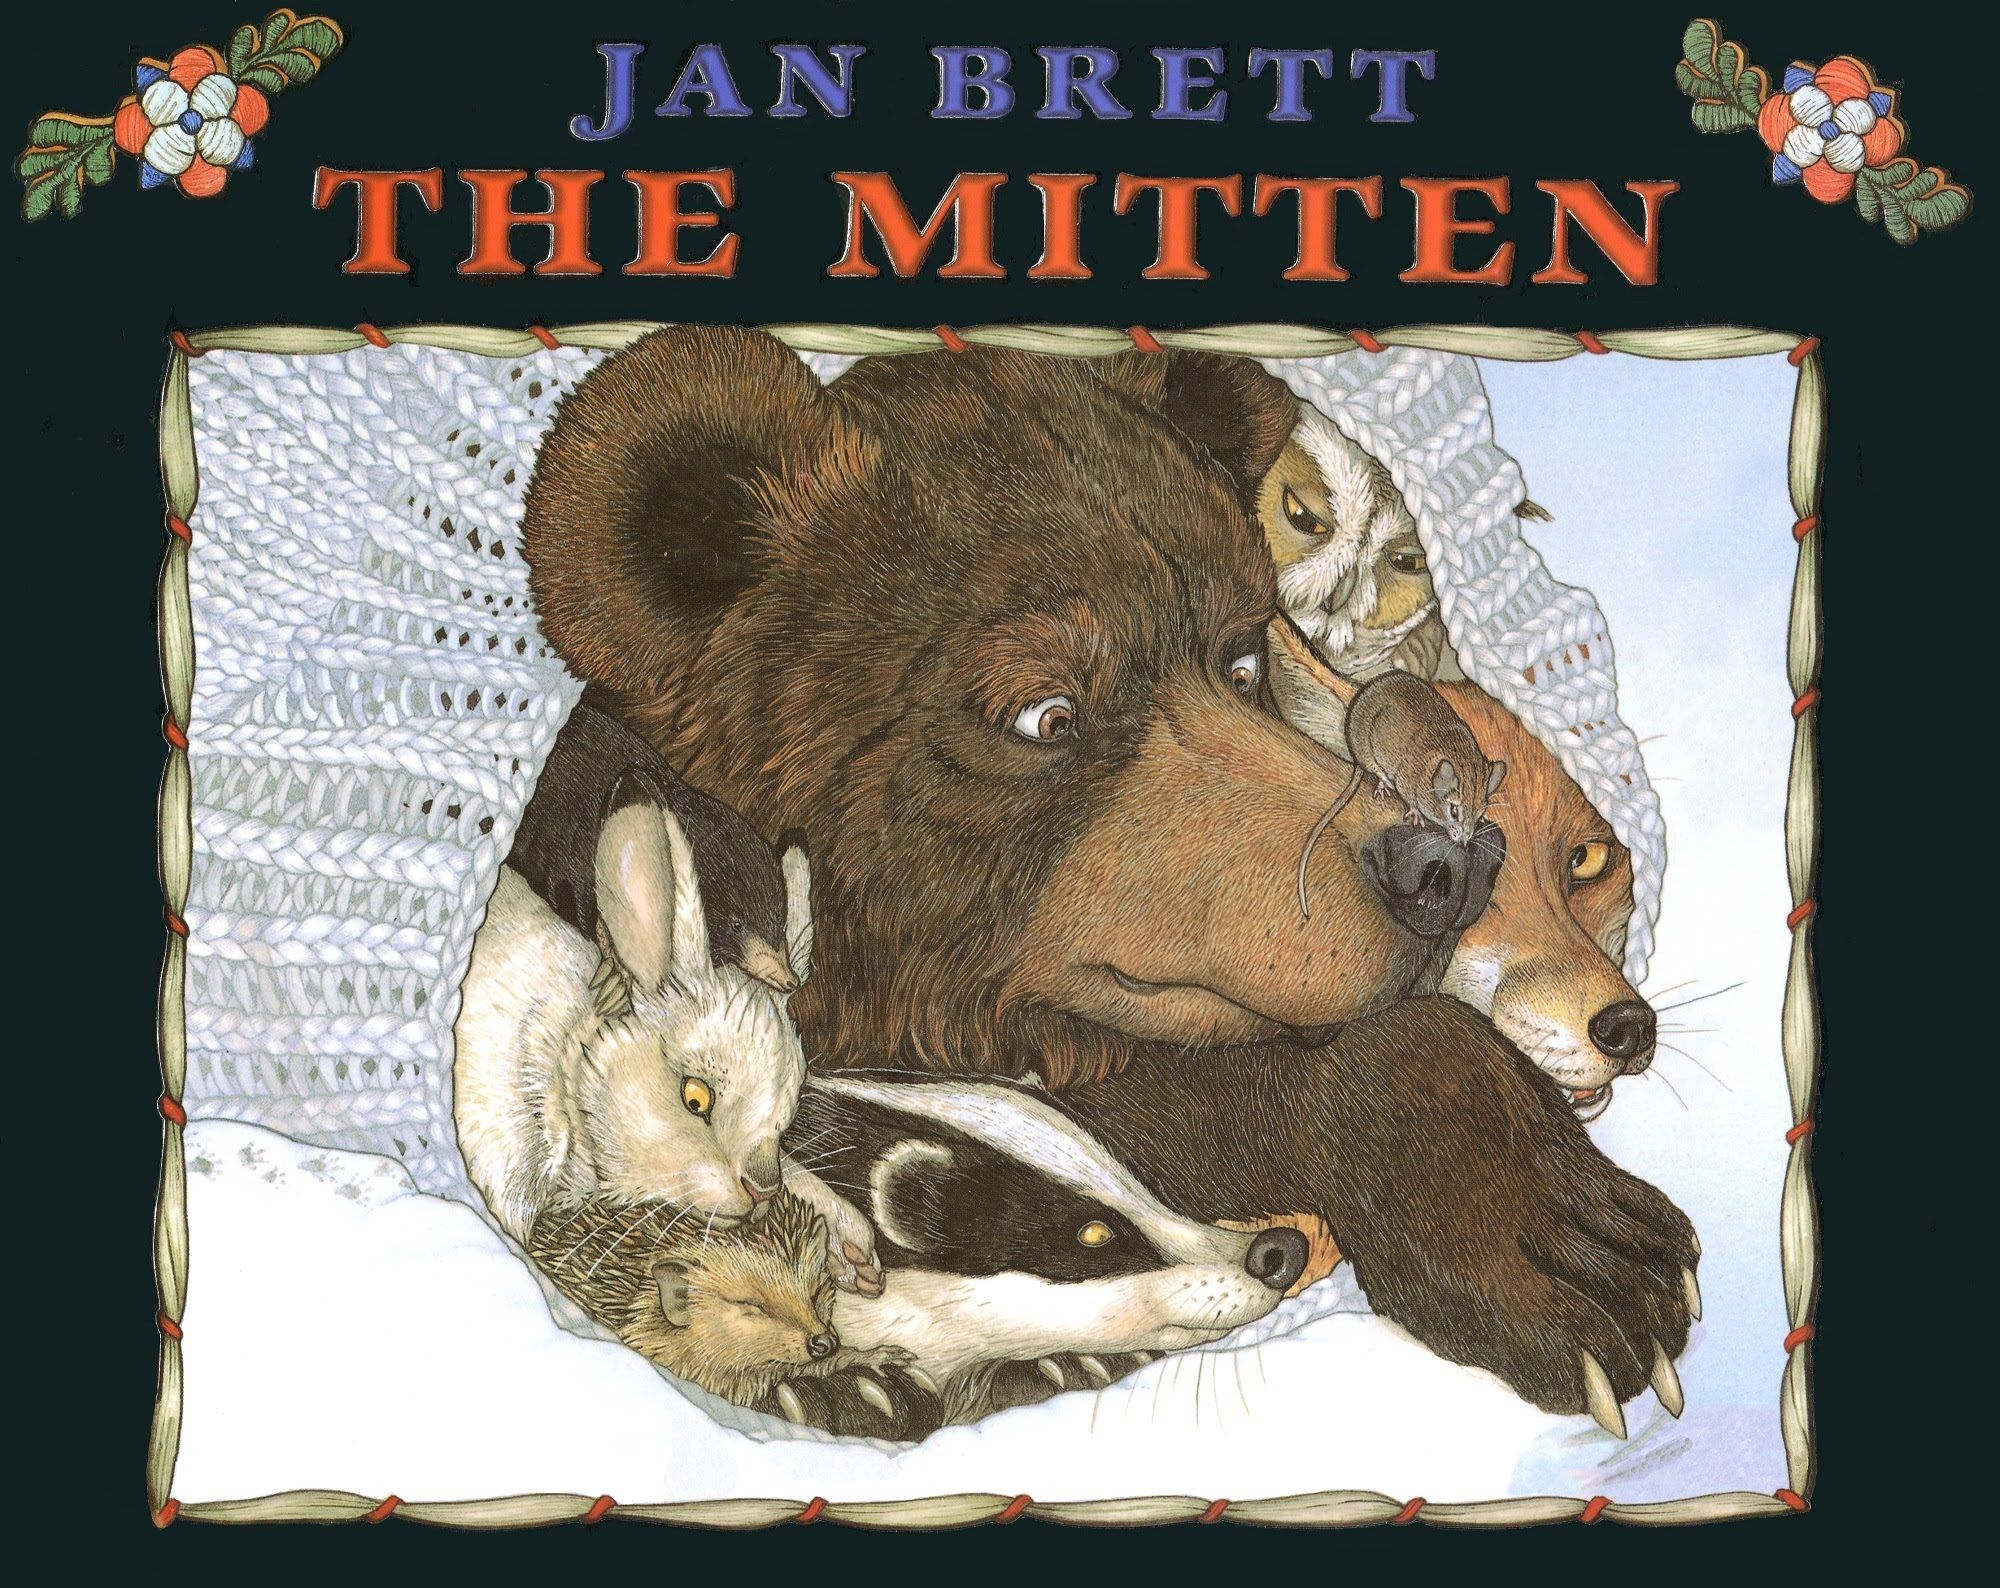 A Cute Story About A Lost Mitten Being Populated By All Sorts Of Woodland Creatures The